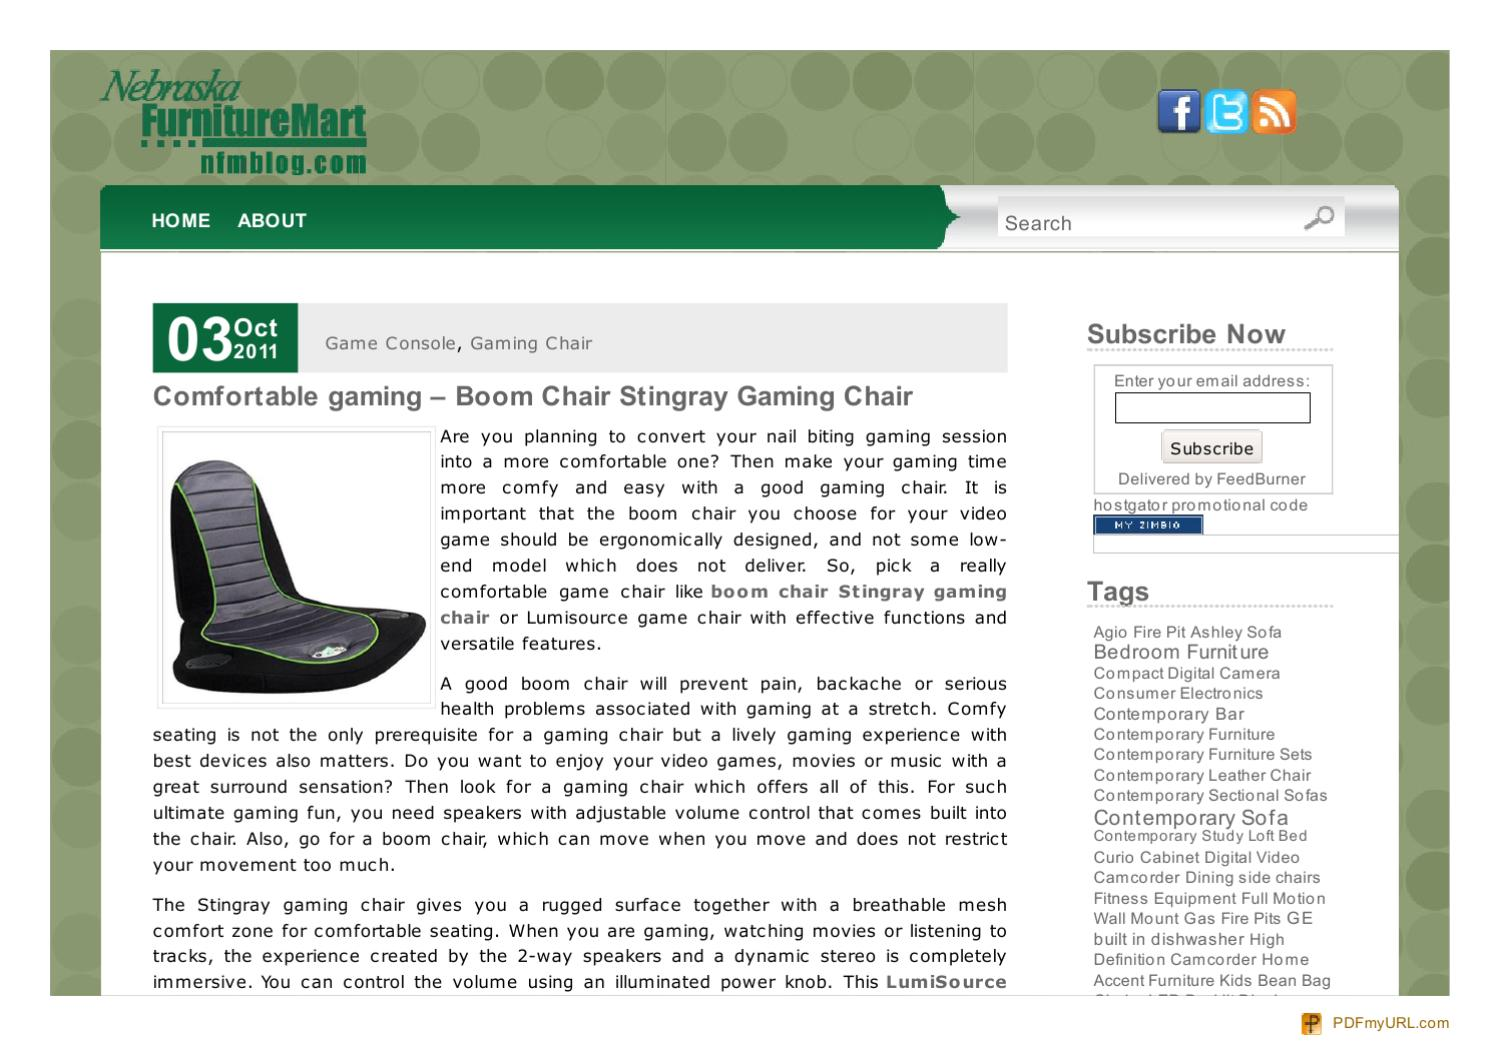 Admirable Nfmblog Com Comfortable Gaming Boom Chair Stingray Gaming Alphanode Cool Chair Designs And Ideas Alphanodeonline